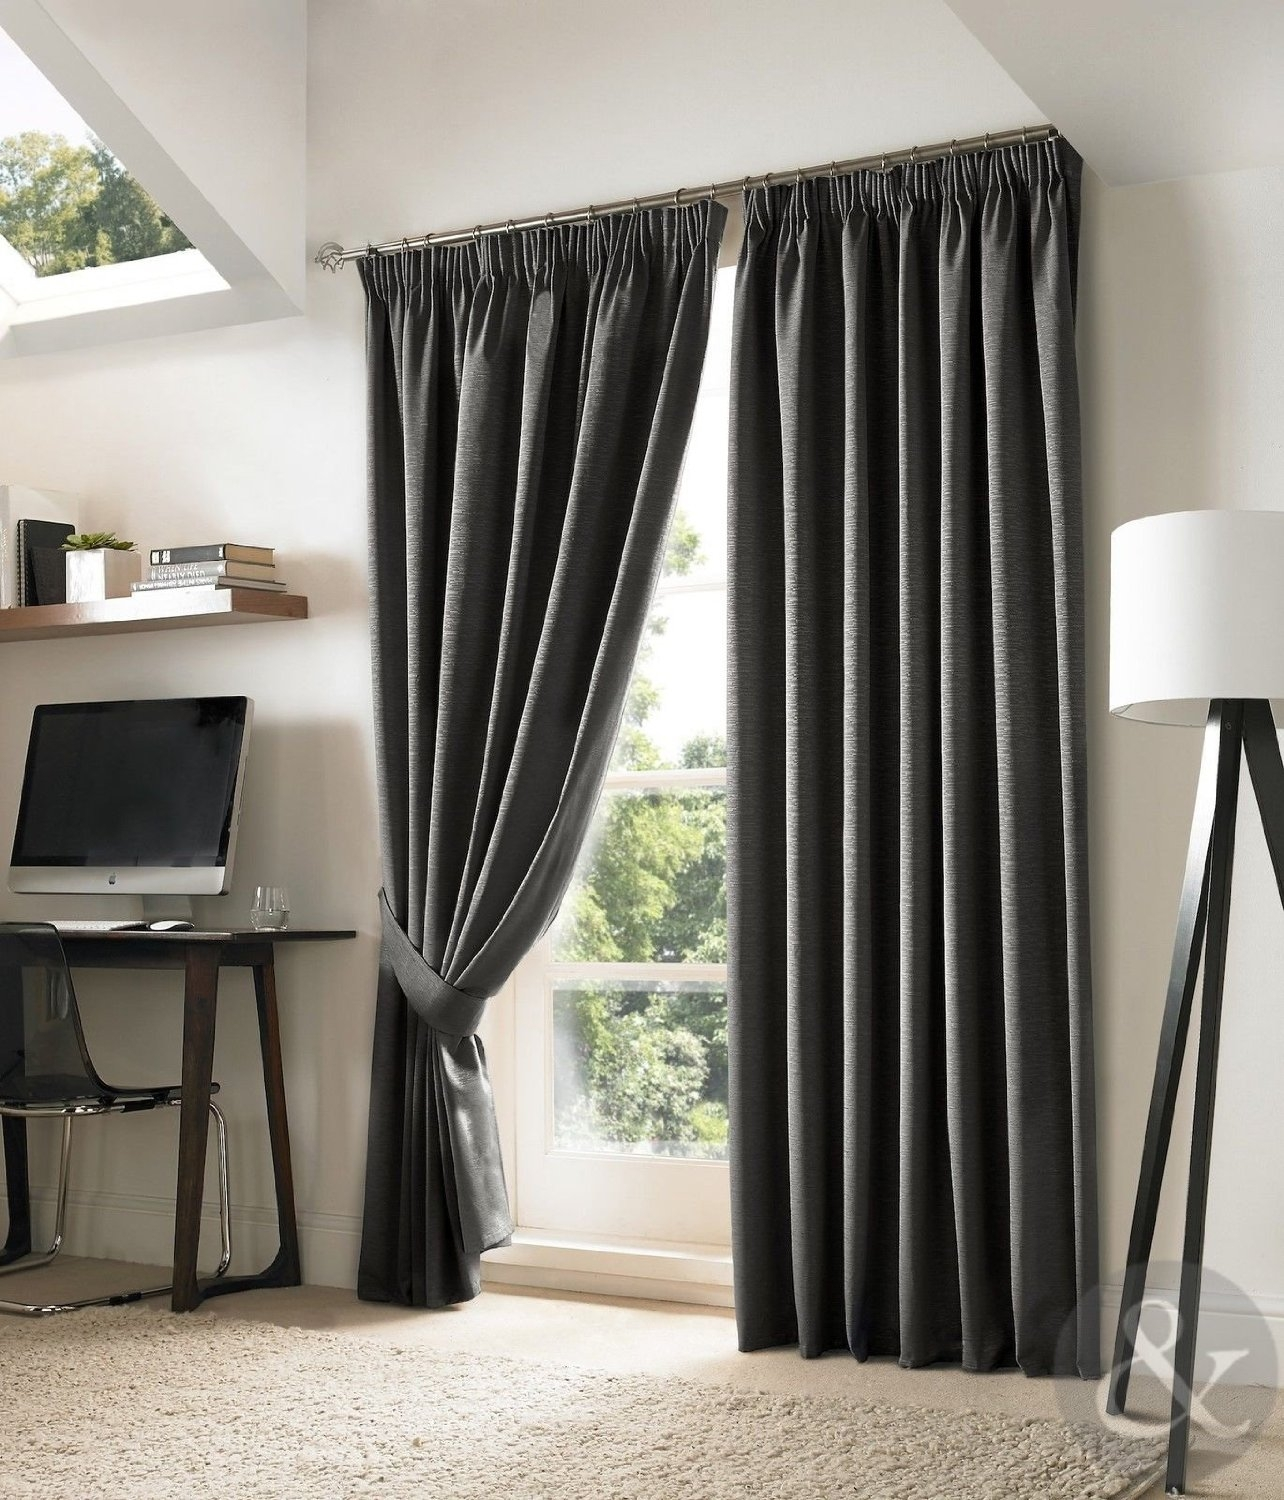 New Blackout Curtains Luxury Fully Lined Embroidered Pencil With Regard To Thick Grey Curtains (View 12 of 15)